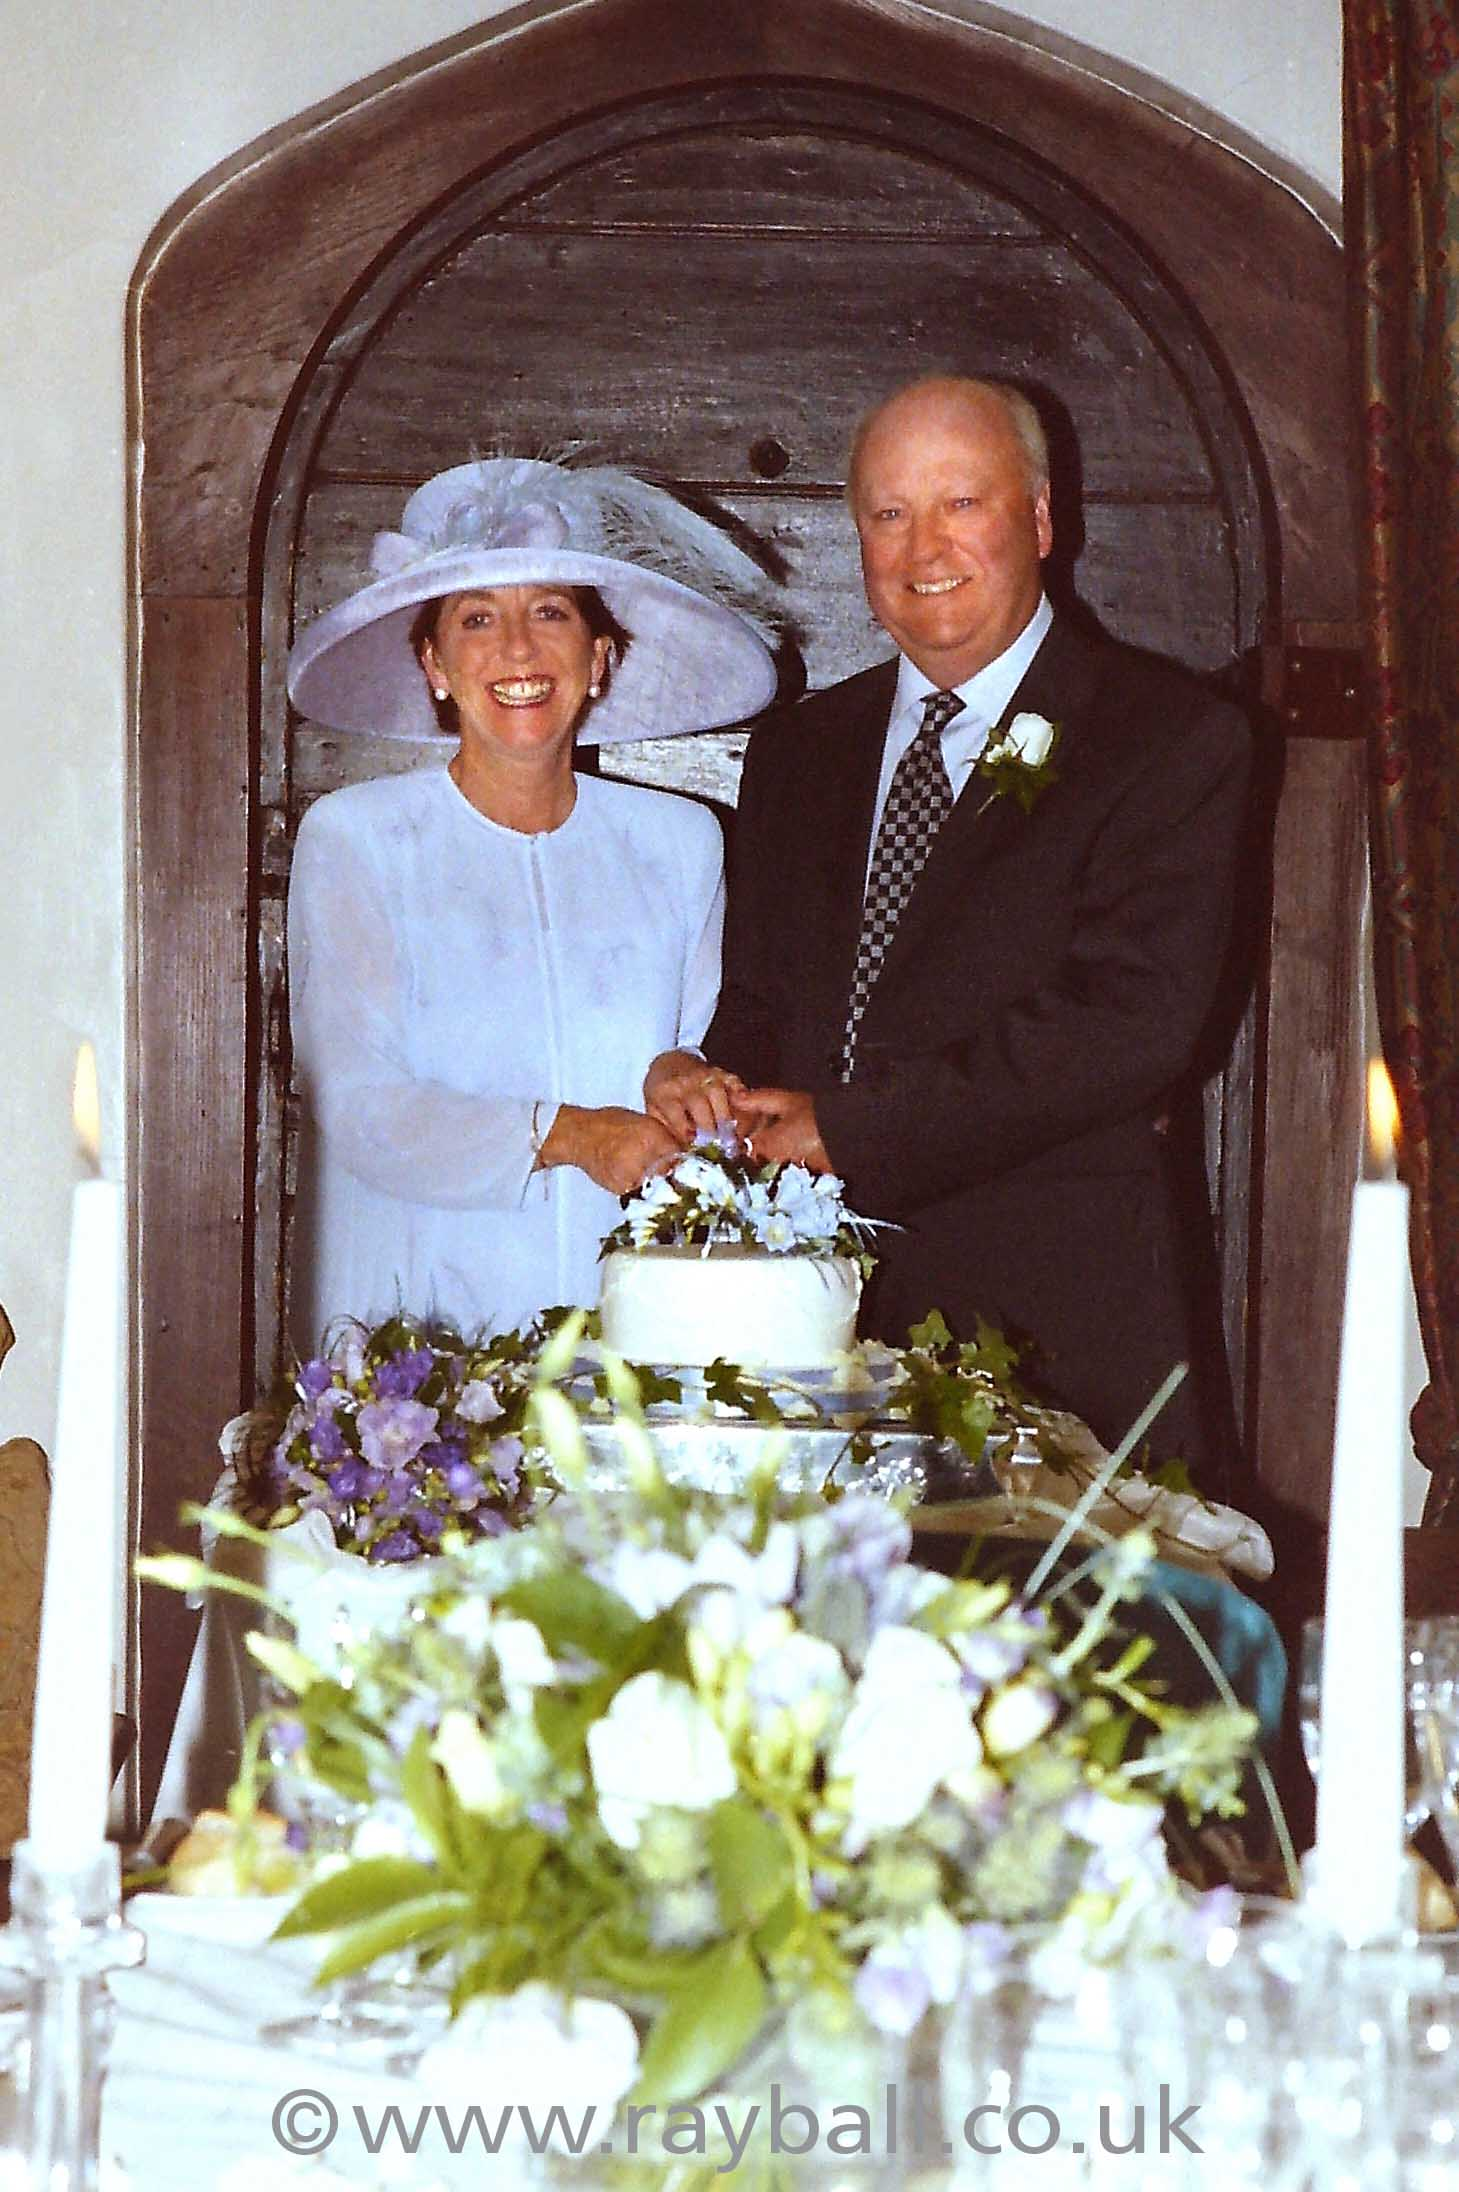 My beautiful picture at my Caterham brother's wedding in Amberly, Sussex